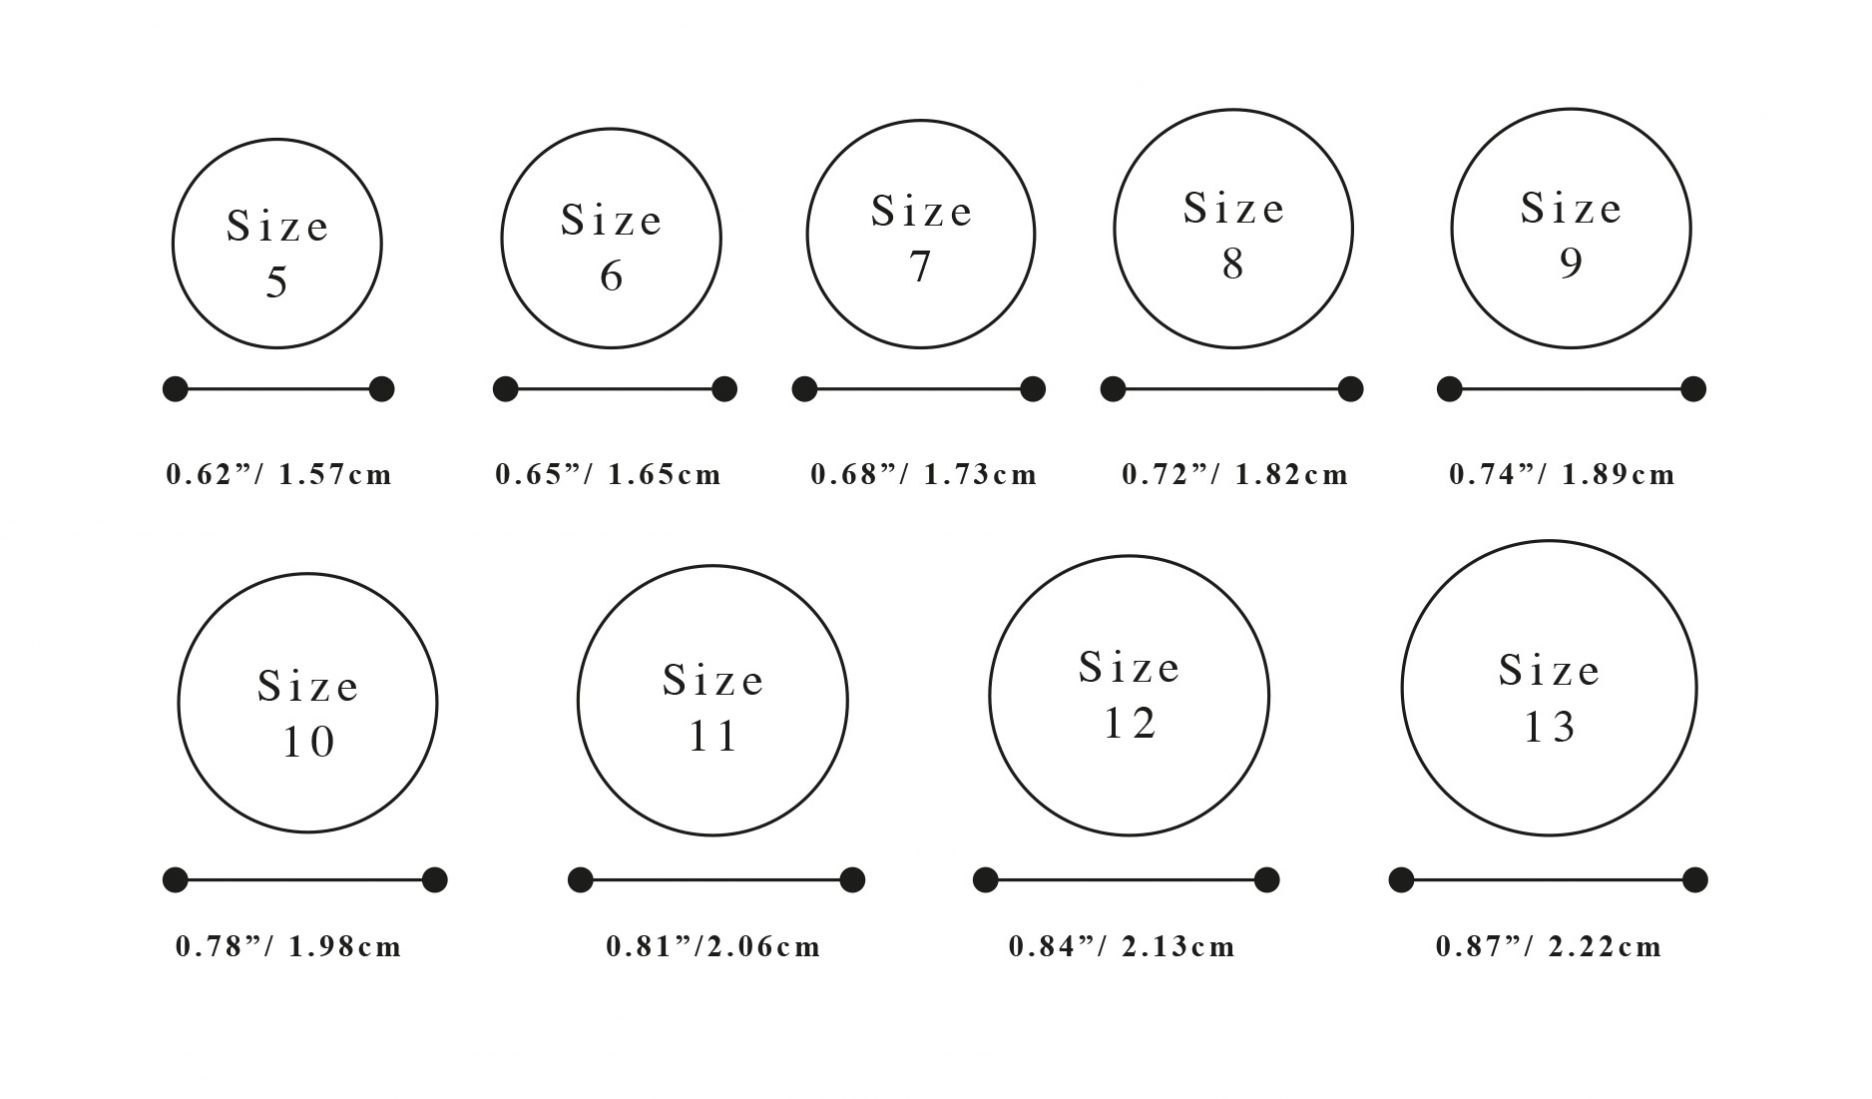 Printable Ring Sizer Chart (79+ Images In Collection) Page 1 - Free Printable Ring Sizer Uk